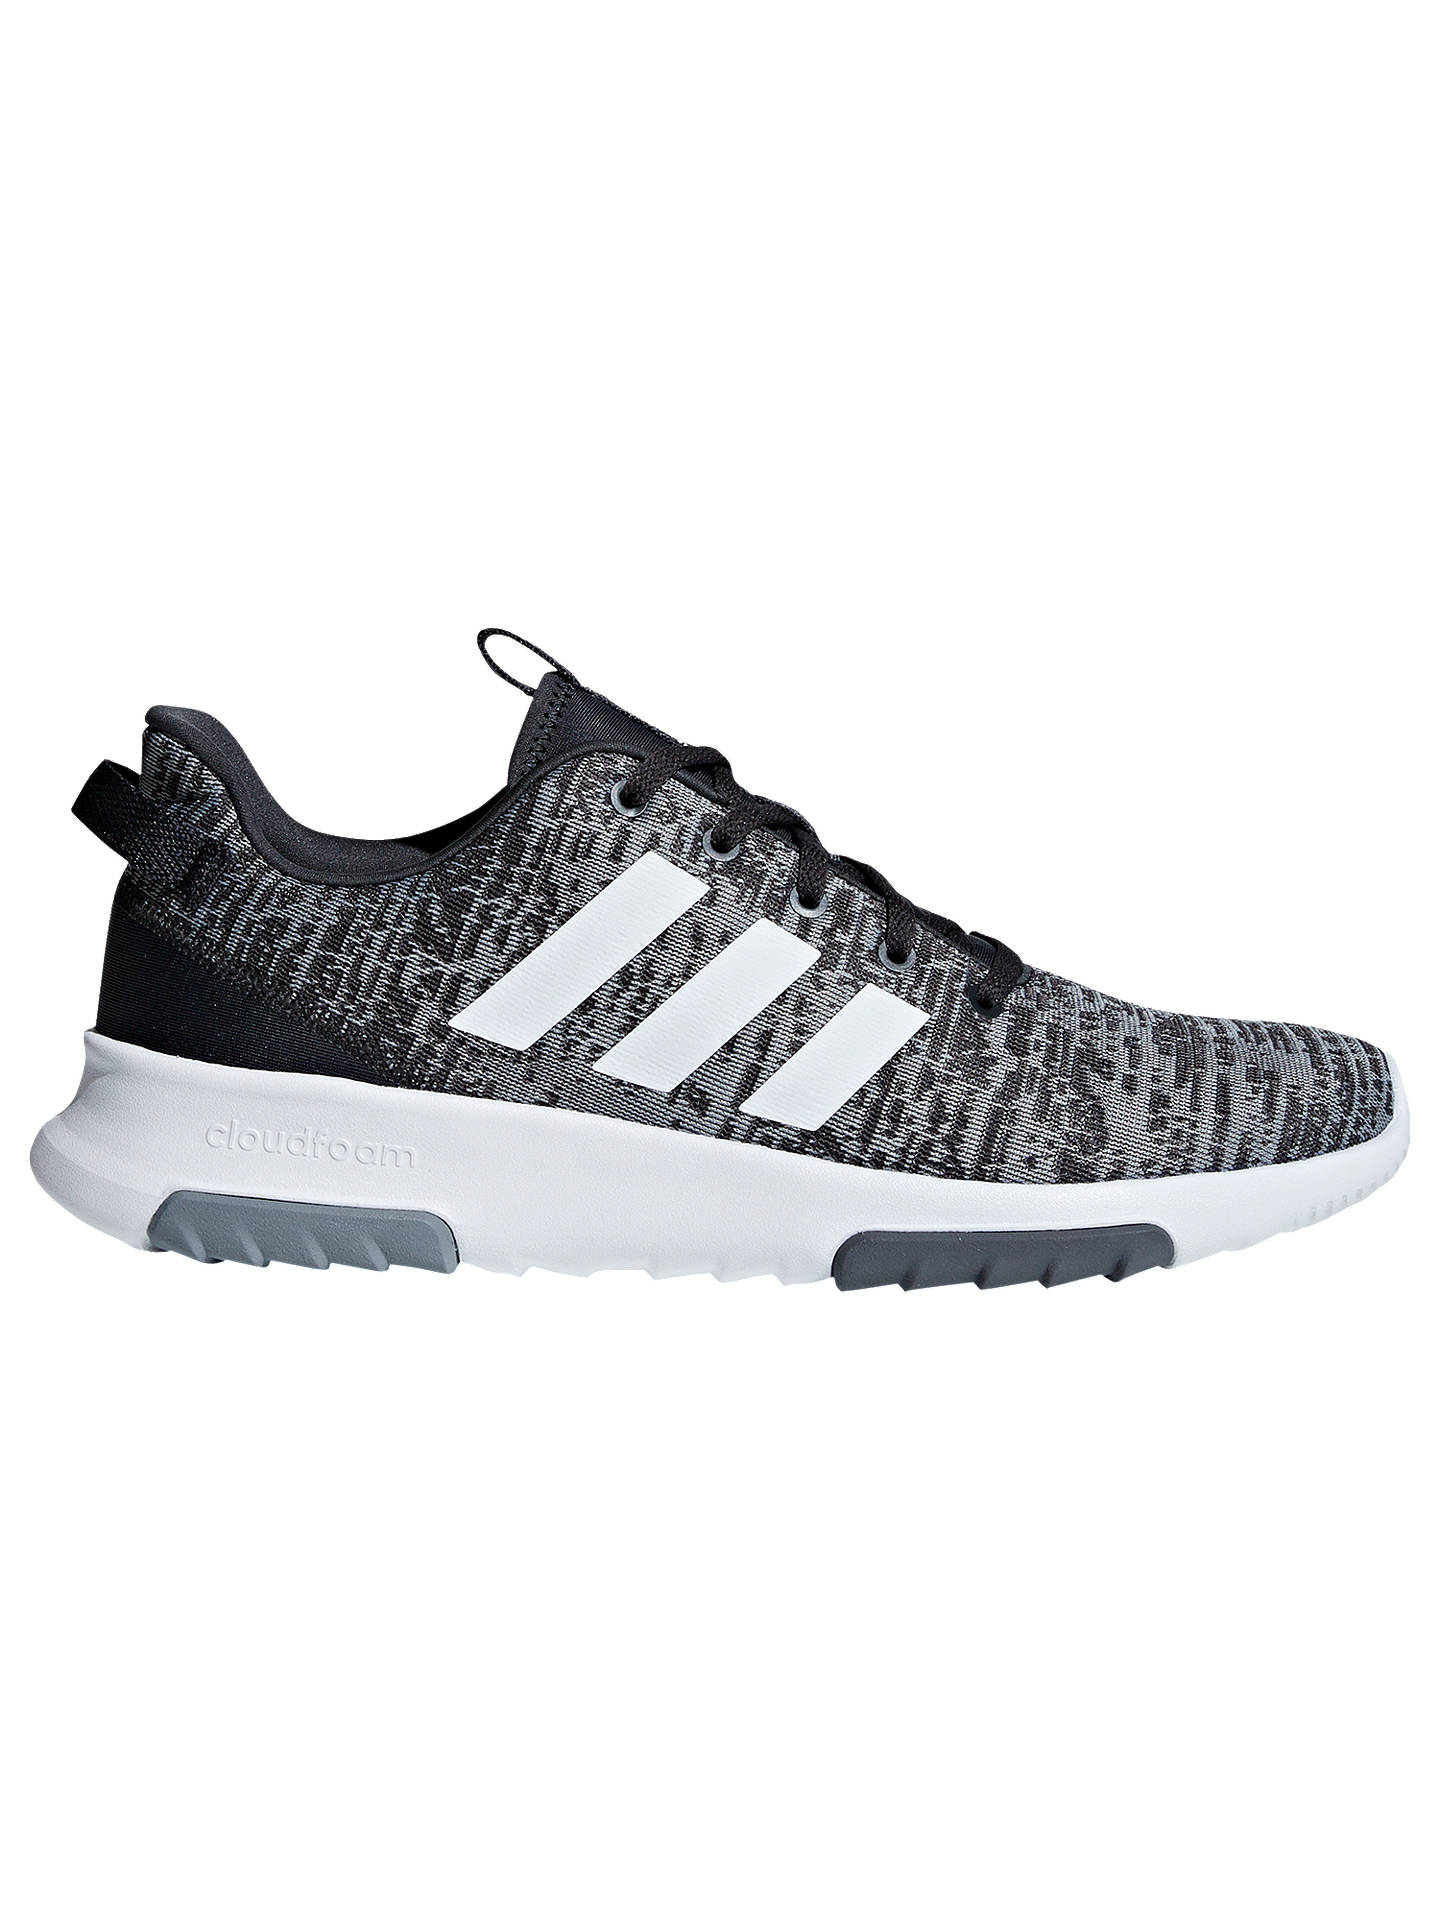 adidas Cloudfoam Racer TR Men's Shoes, GreyWhite at John